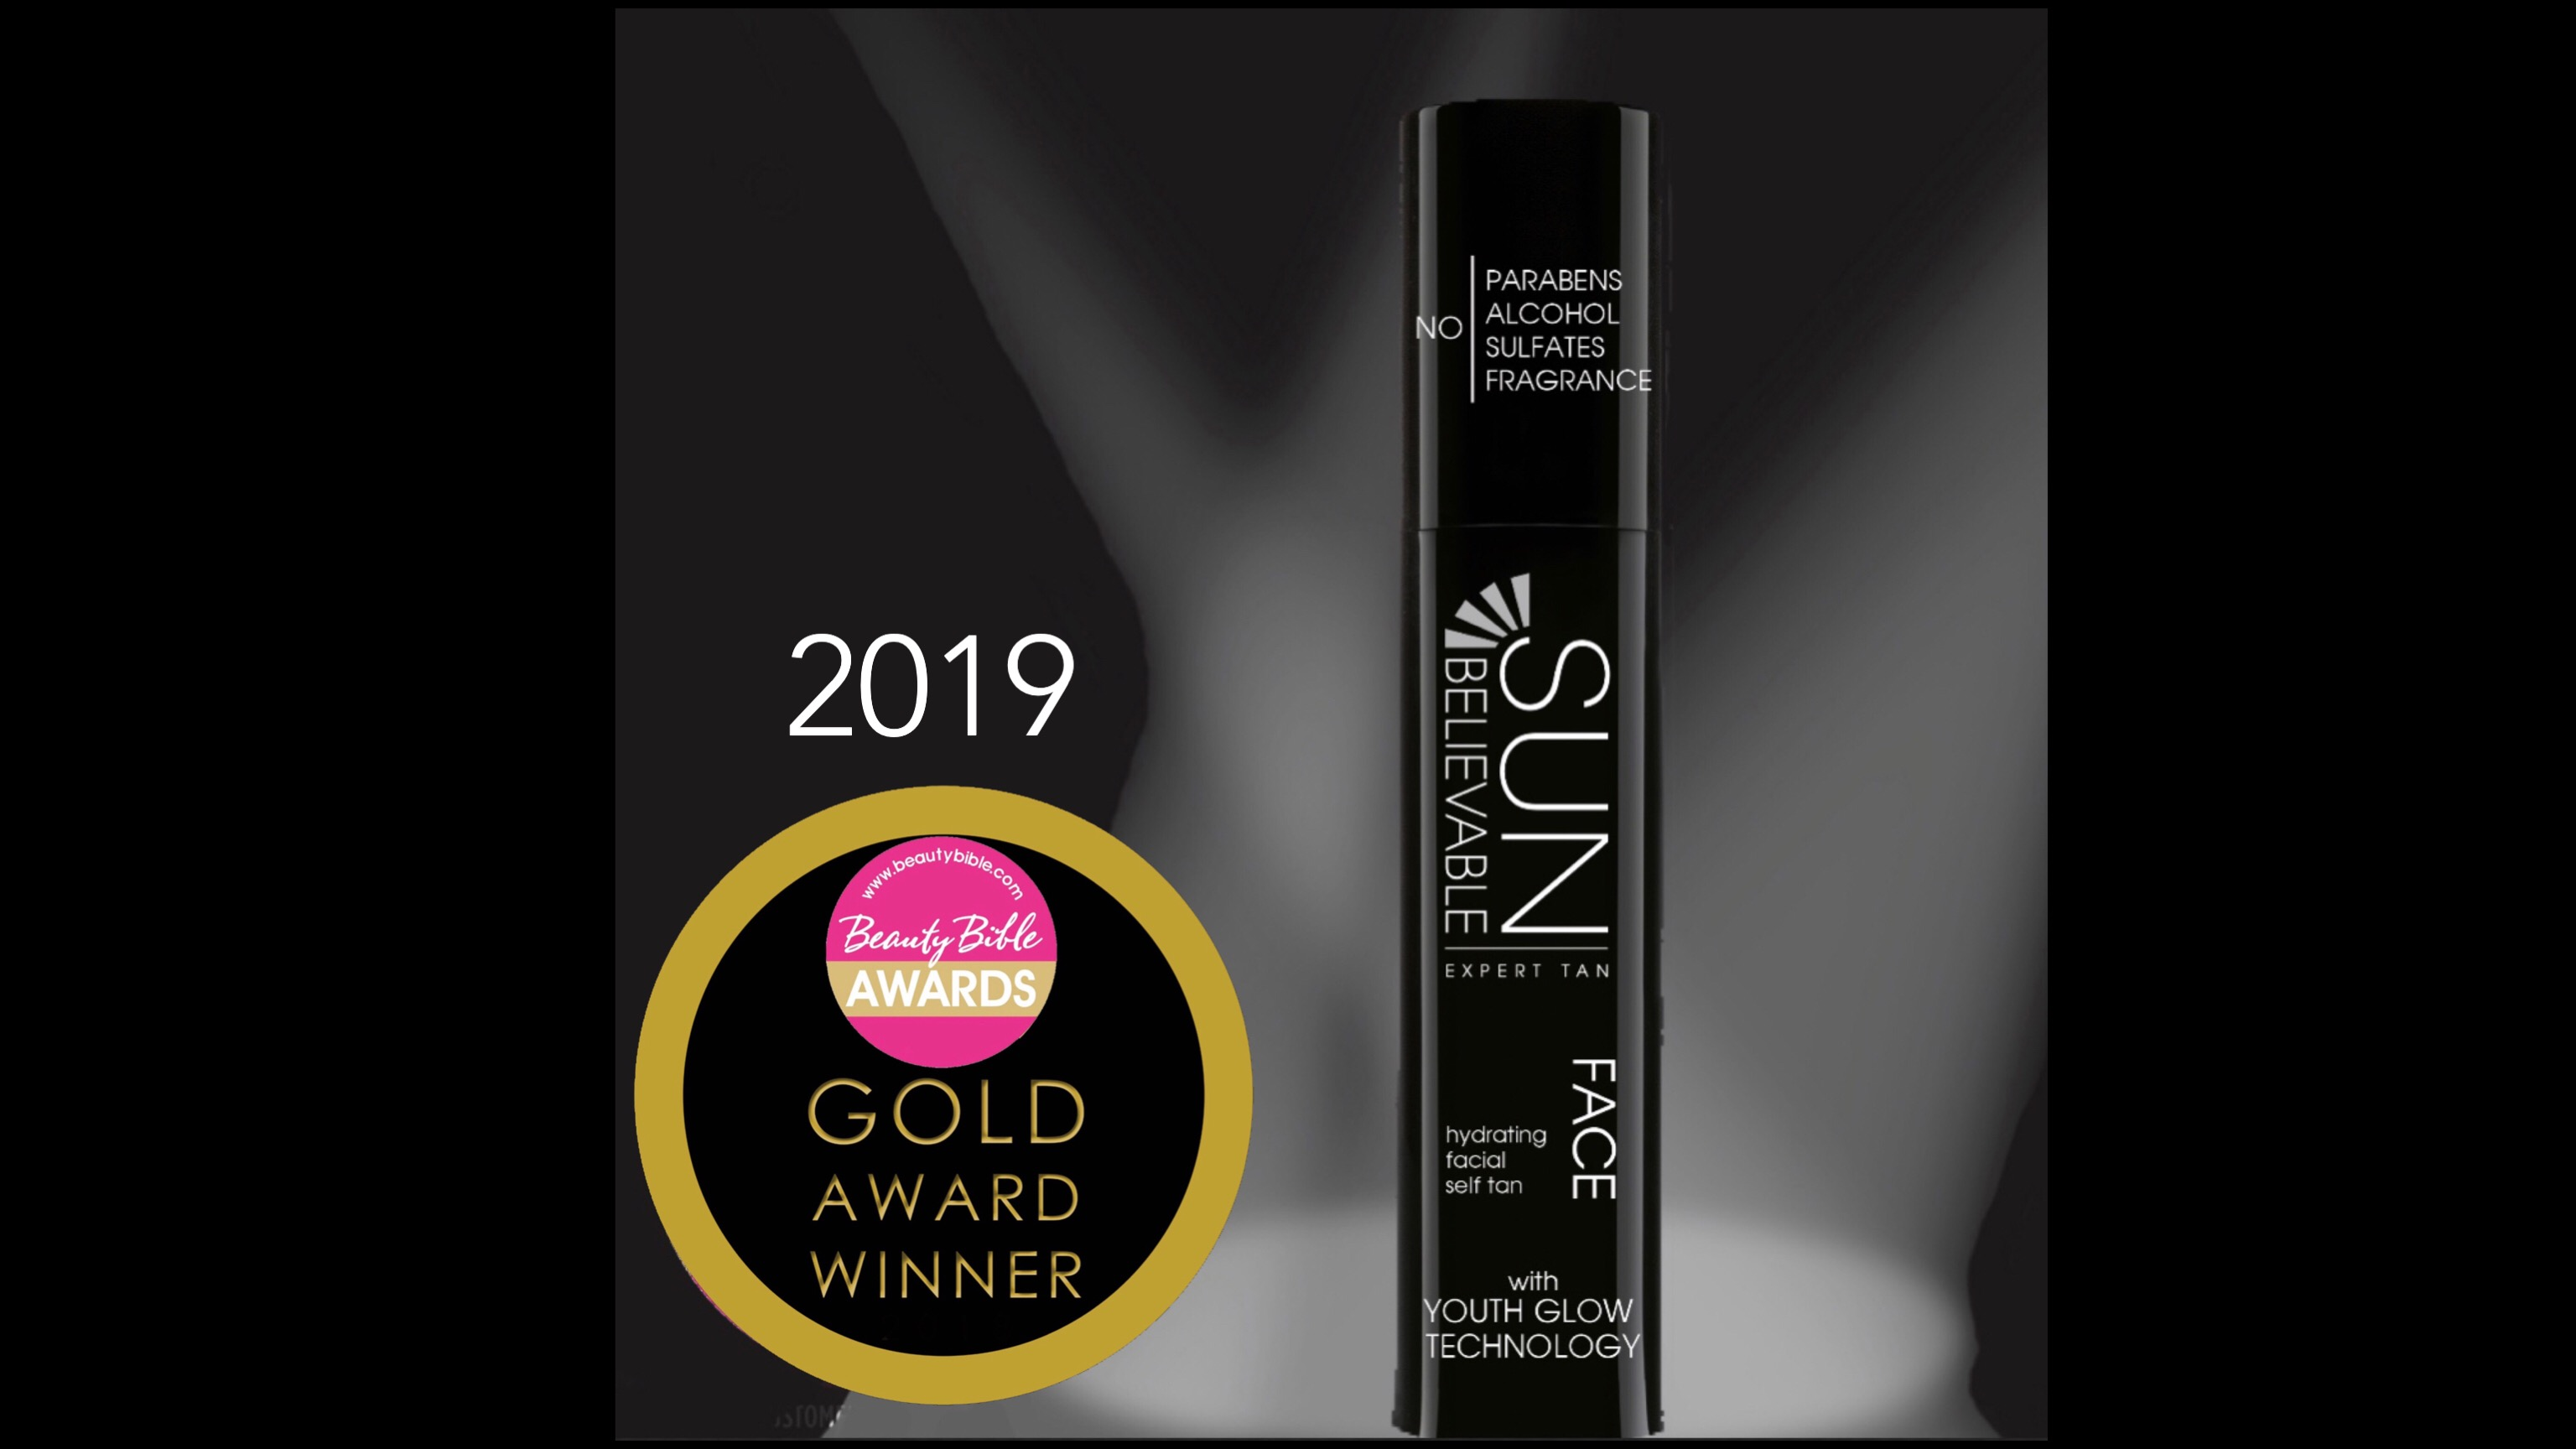 Beauty Bible Awards 2019